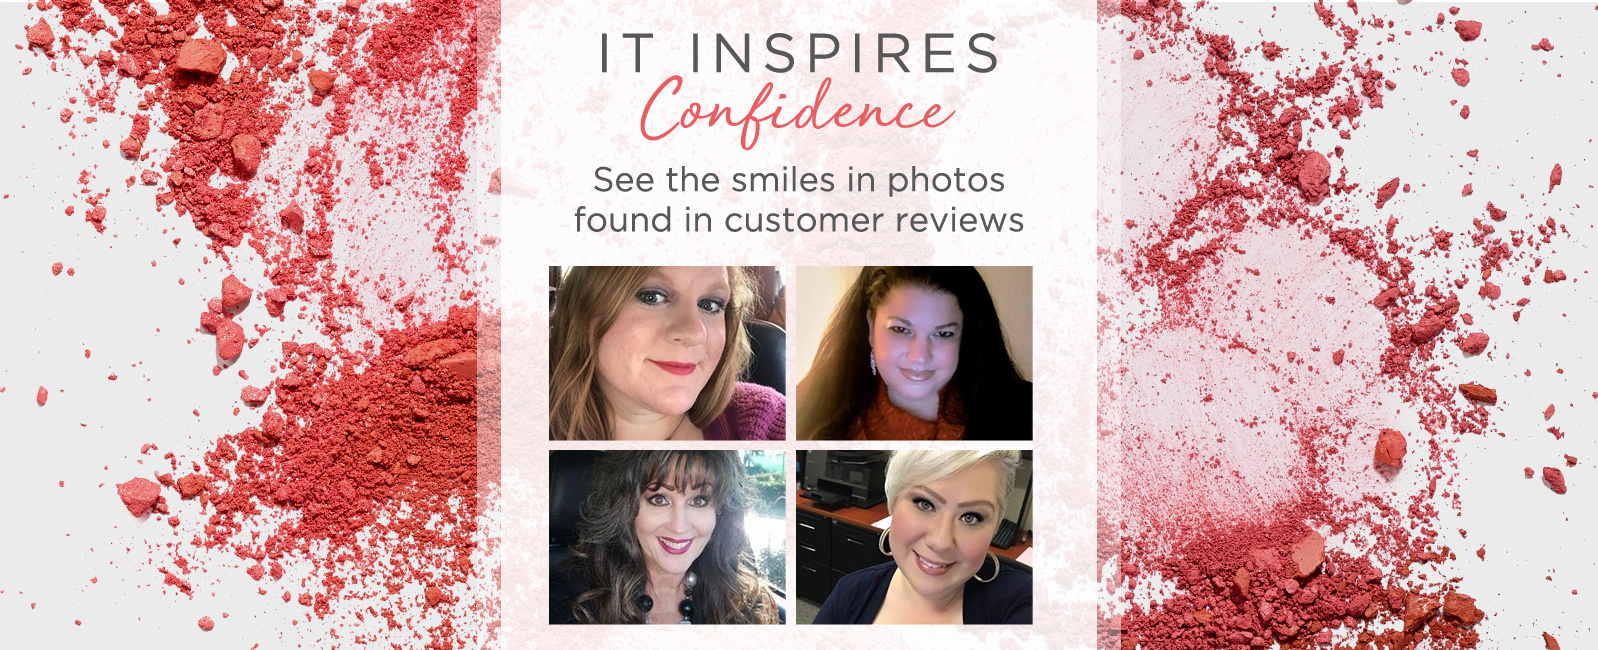 IT Inspires Confidence. See the smiles in photos found in customer reviews